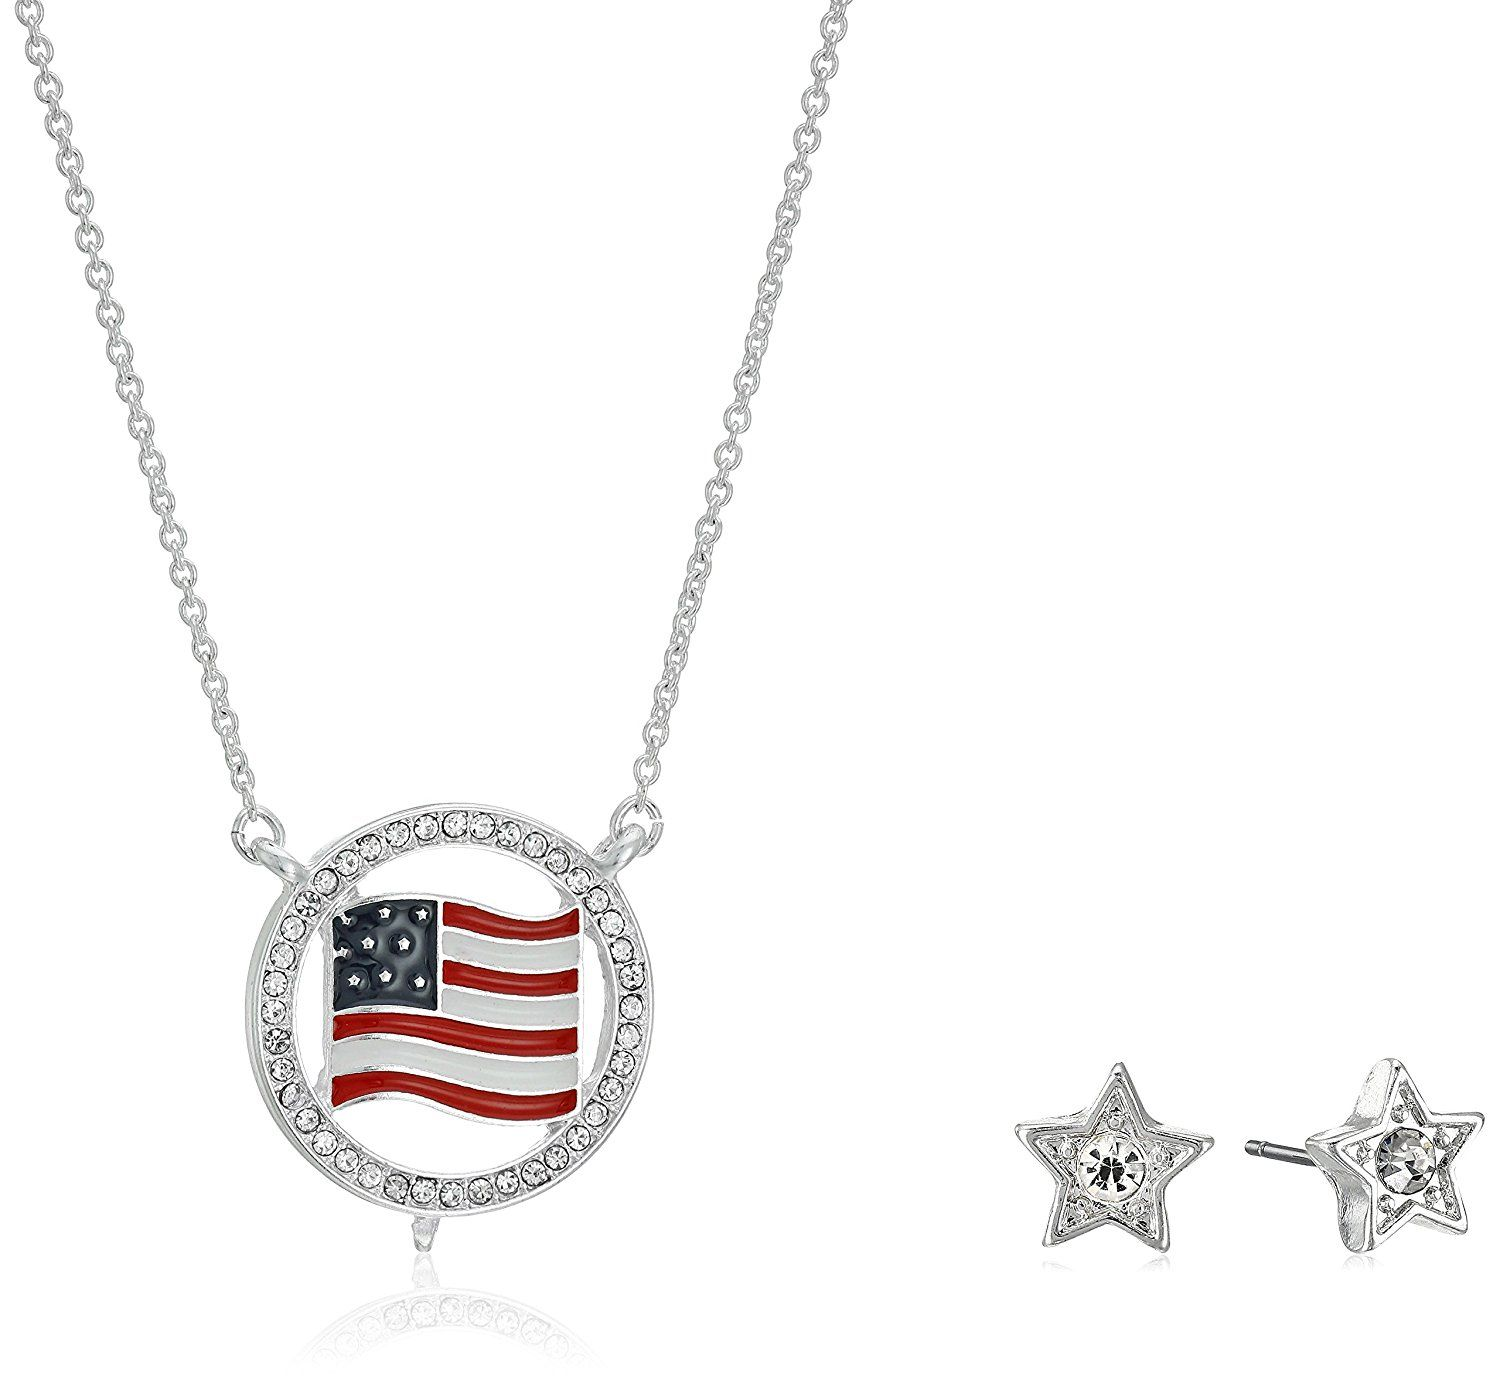 Napier ugift boxu boxed silvertone red and blue patriotic necklace